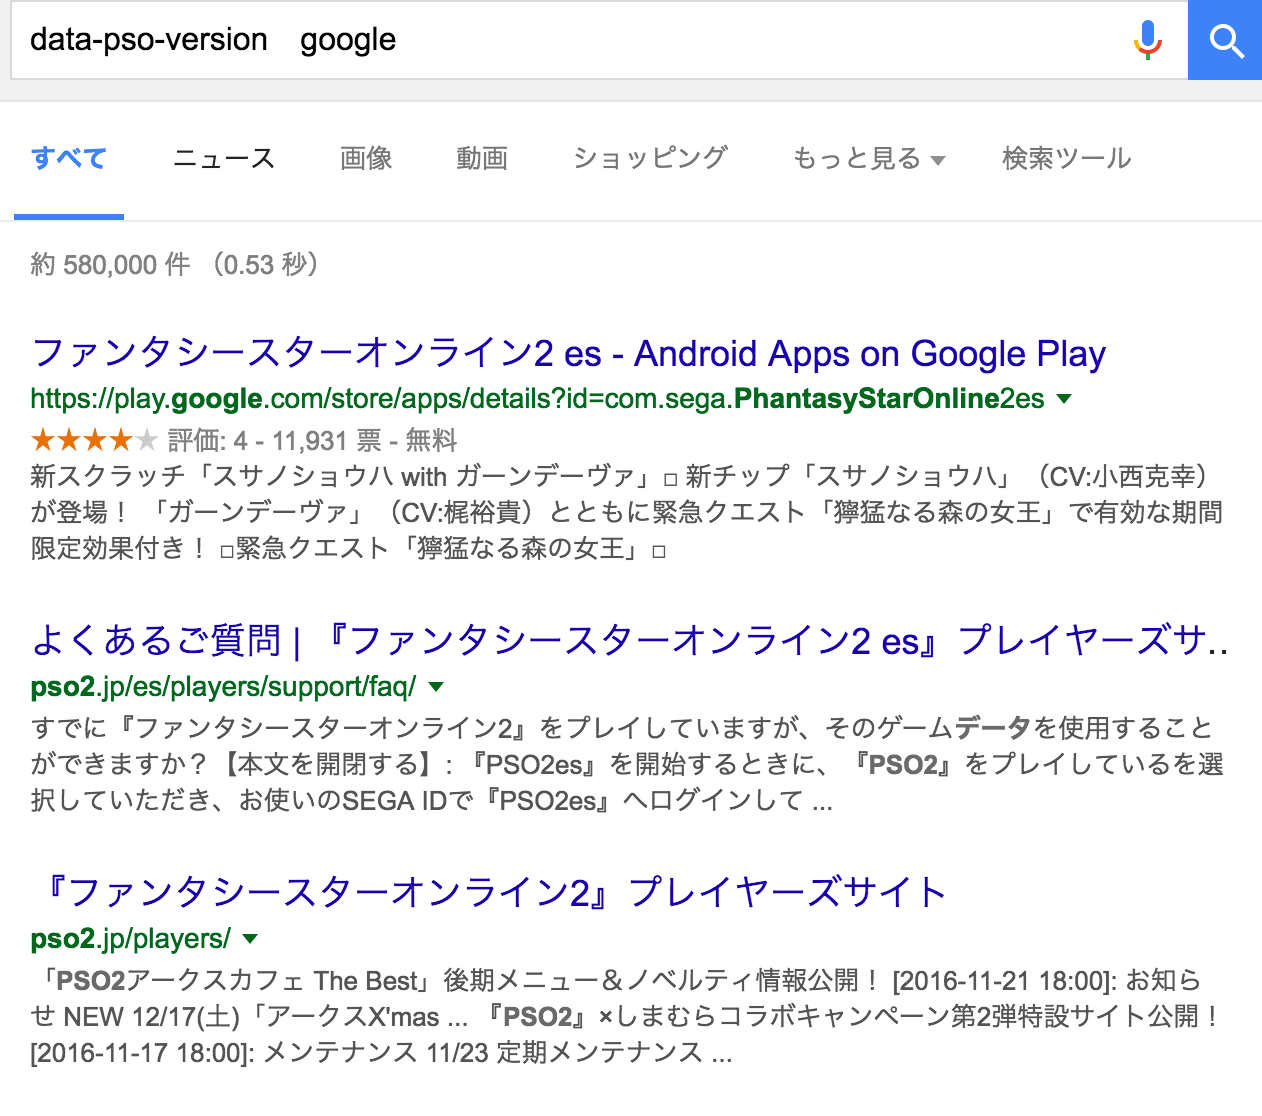 data-pso-version google